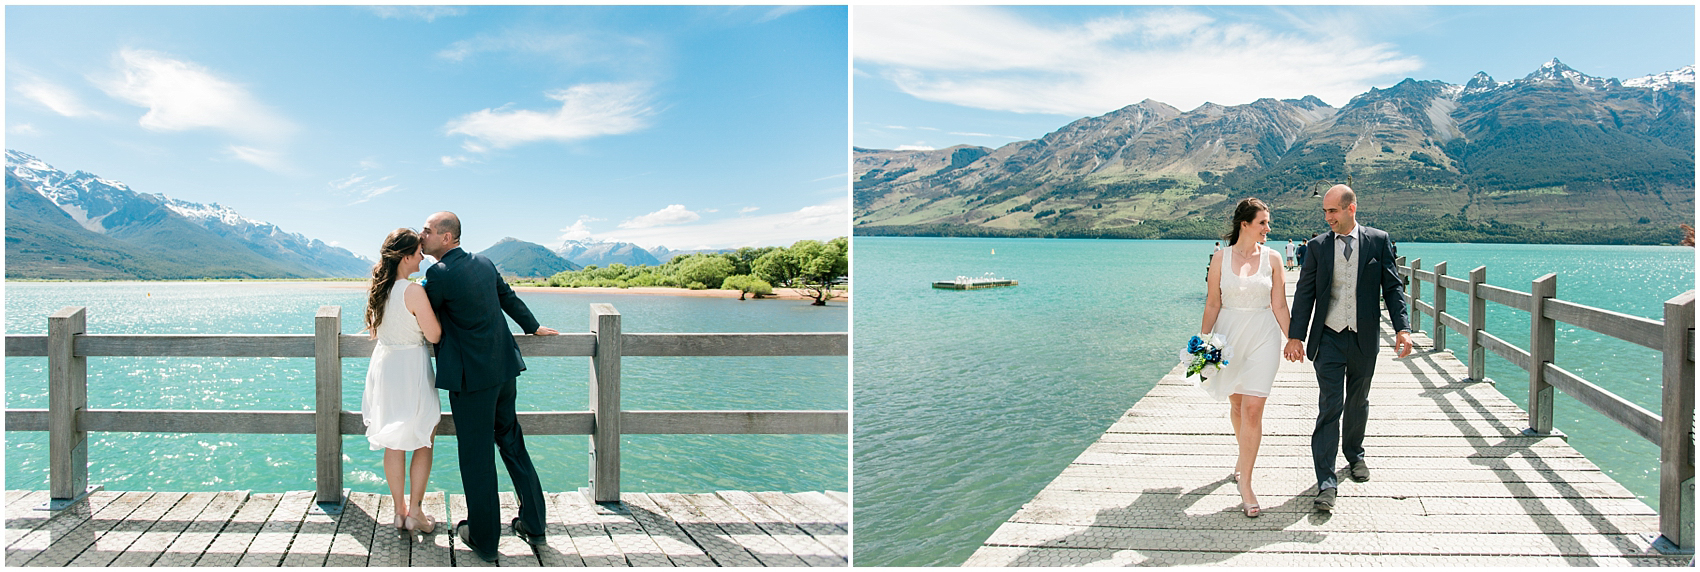 Queenstown New Zealand Wedding Photographer Bruna Fabricio Smetona Photo-0035.jpg